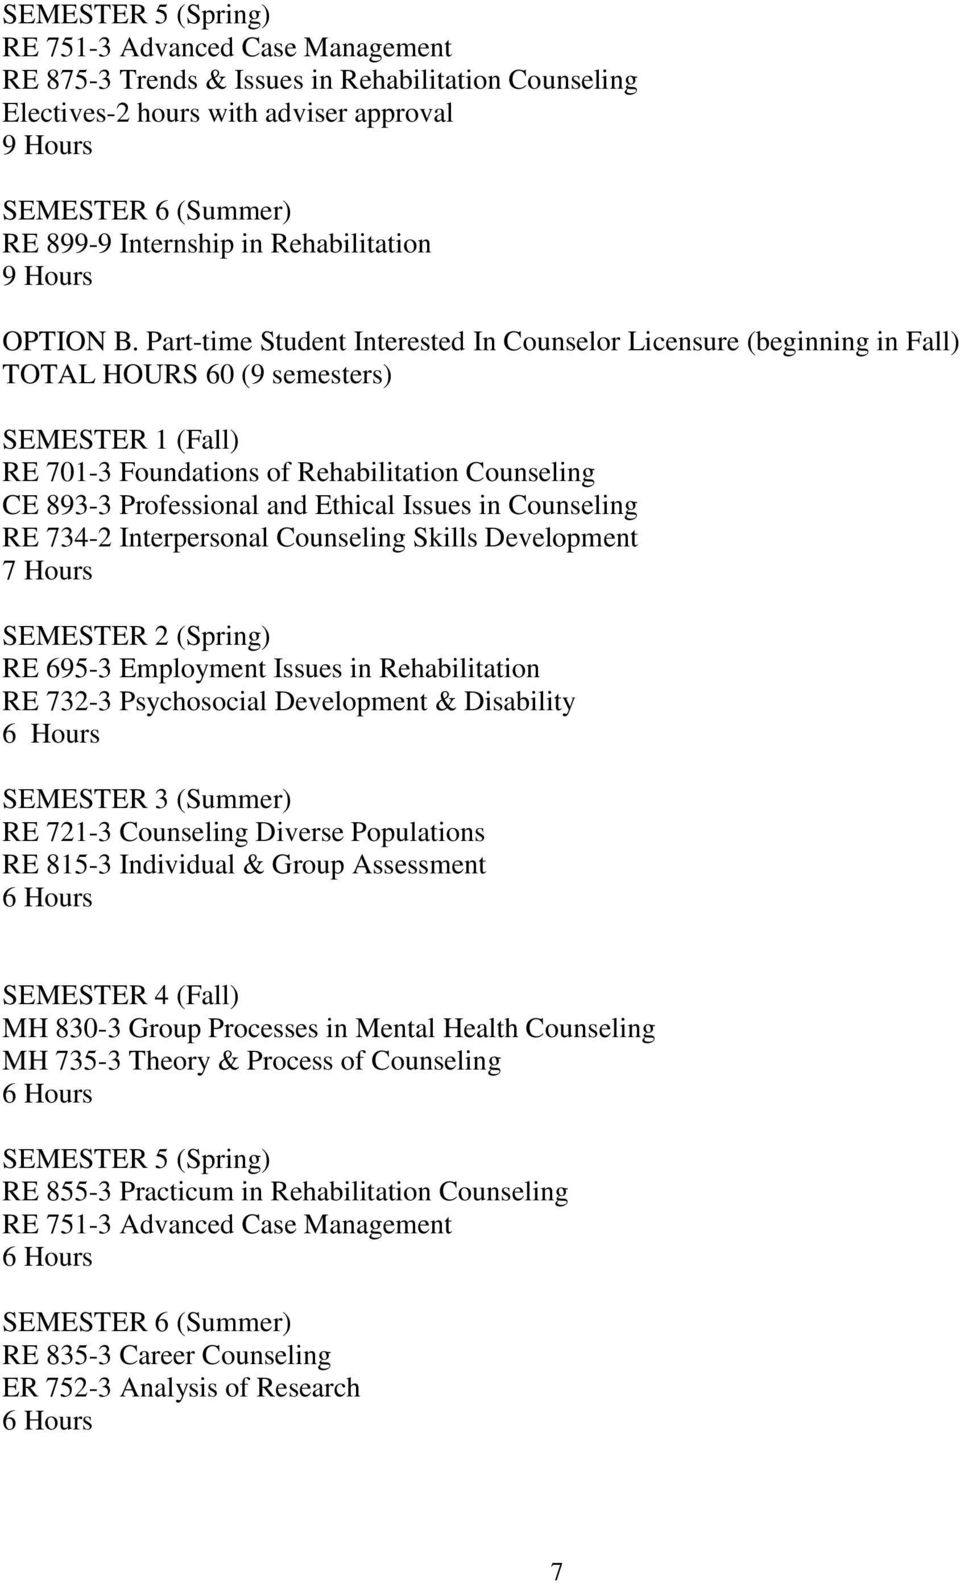 Part-time Student Interested In Counselor Licensure (beginning in Fall) TOTAL HOURS 60 (9 semesters) SEMESTER 1 (Fall) RE 701-3 Foundations of Rehabilitation Counseling CE 893-3 Professional and